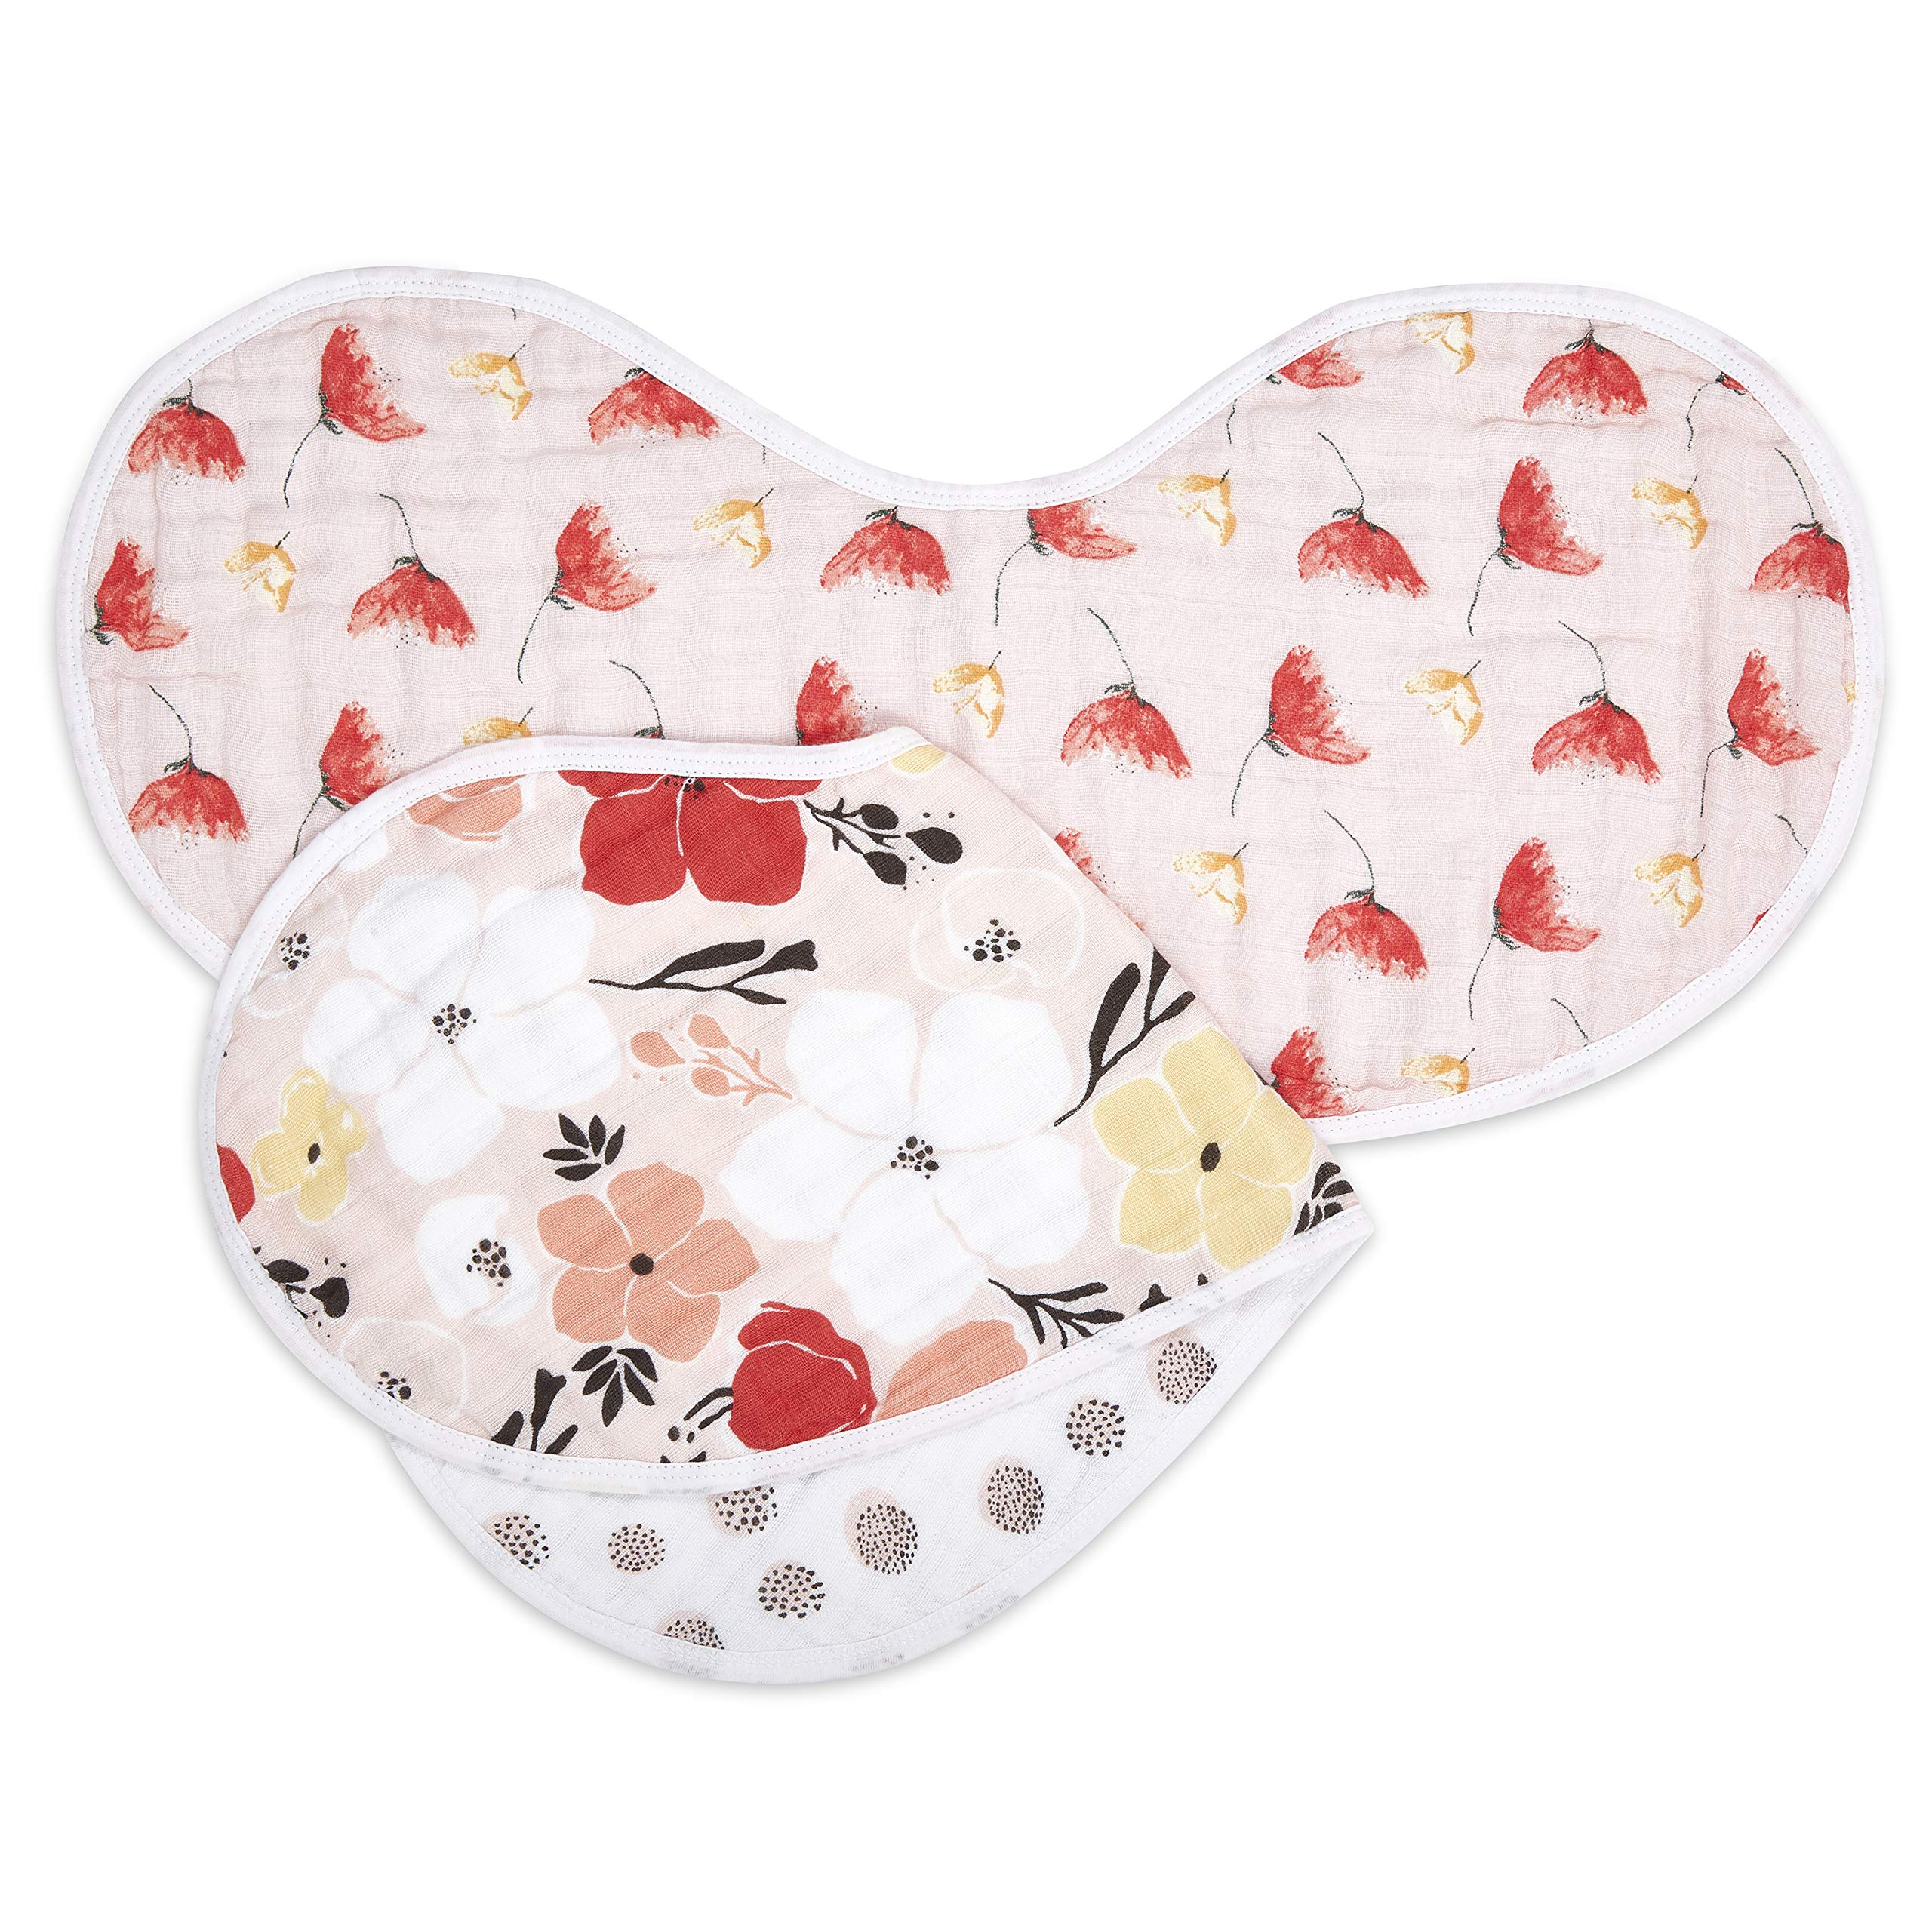 aden + anais Burpy Baby Bib, 100% Cotton Muslin, 4 Layer Multi Use Burping Cloth, Super Soft & Absorbent Burp Rag for Infants, Newborns and Toddlers, 2 Pack, Picked for You